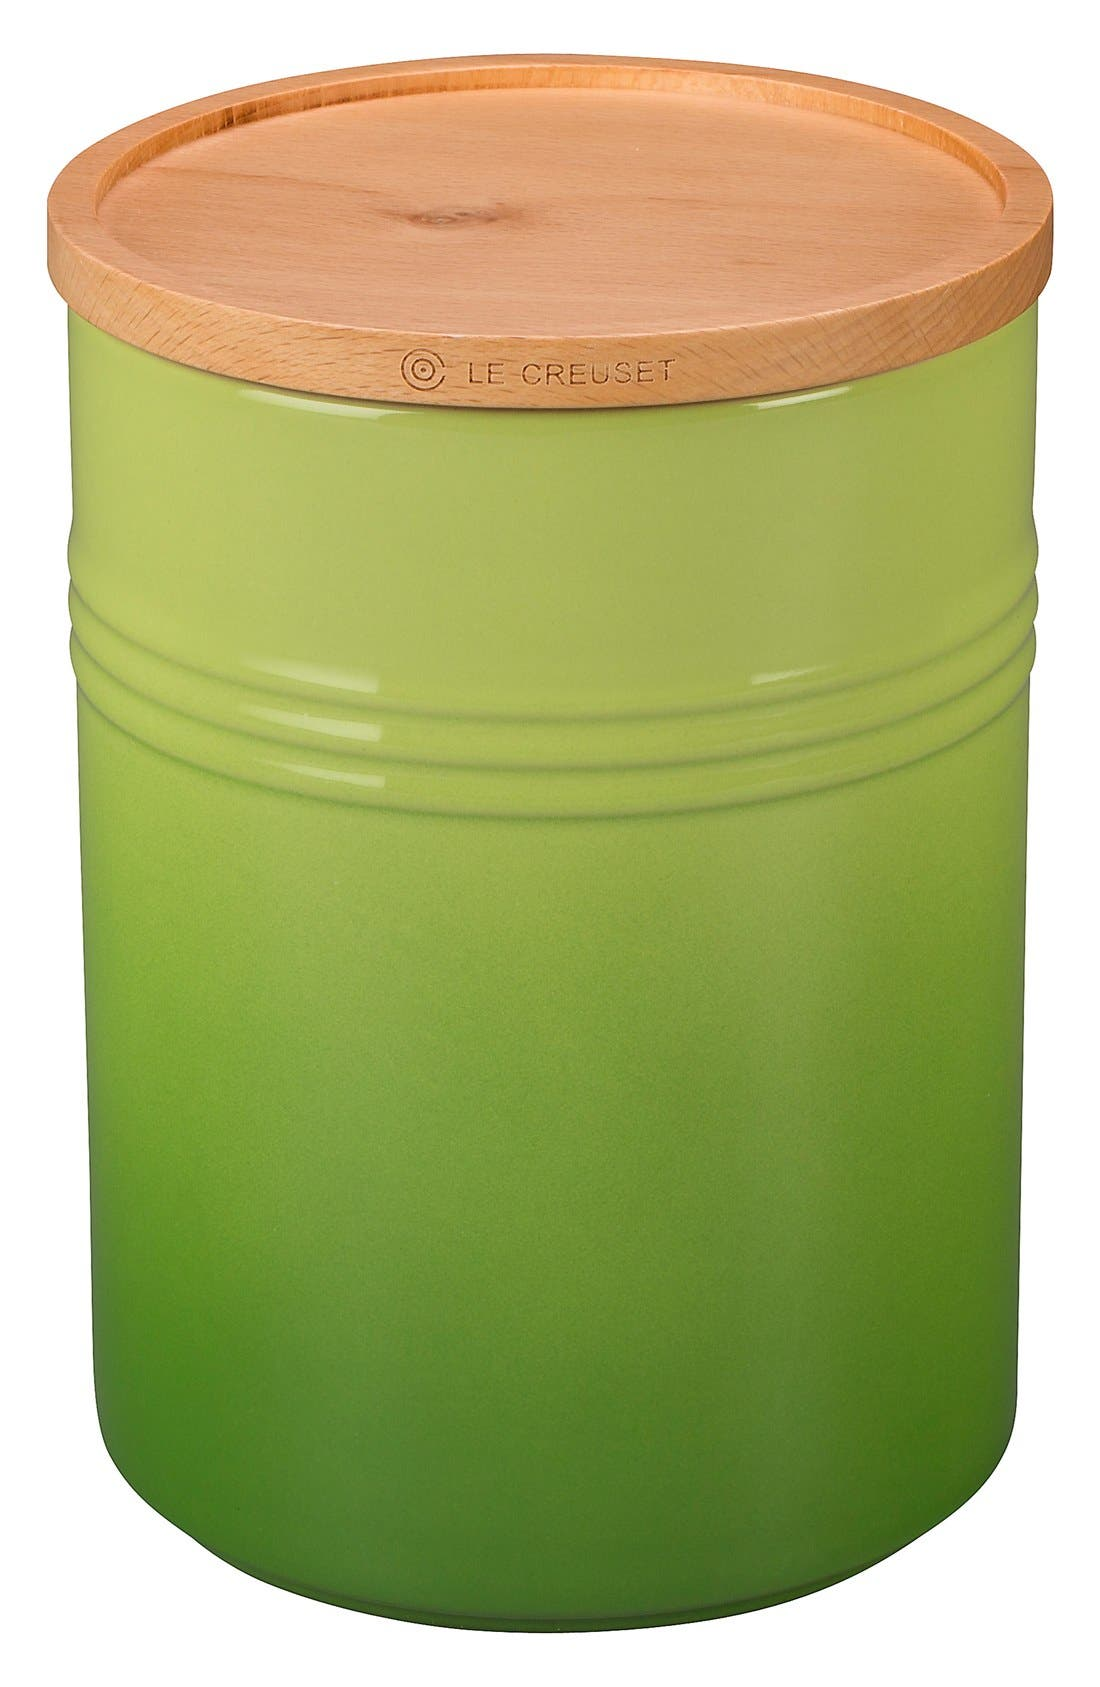 Glazed 22 Ounce Stoneware Storage Canister with Wooden Lid,                             Main thumbnail 1, color,                             PALM